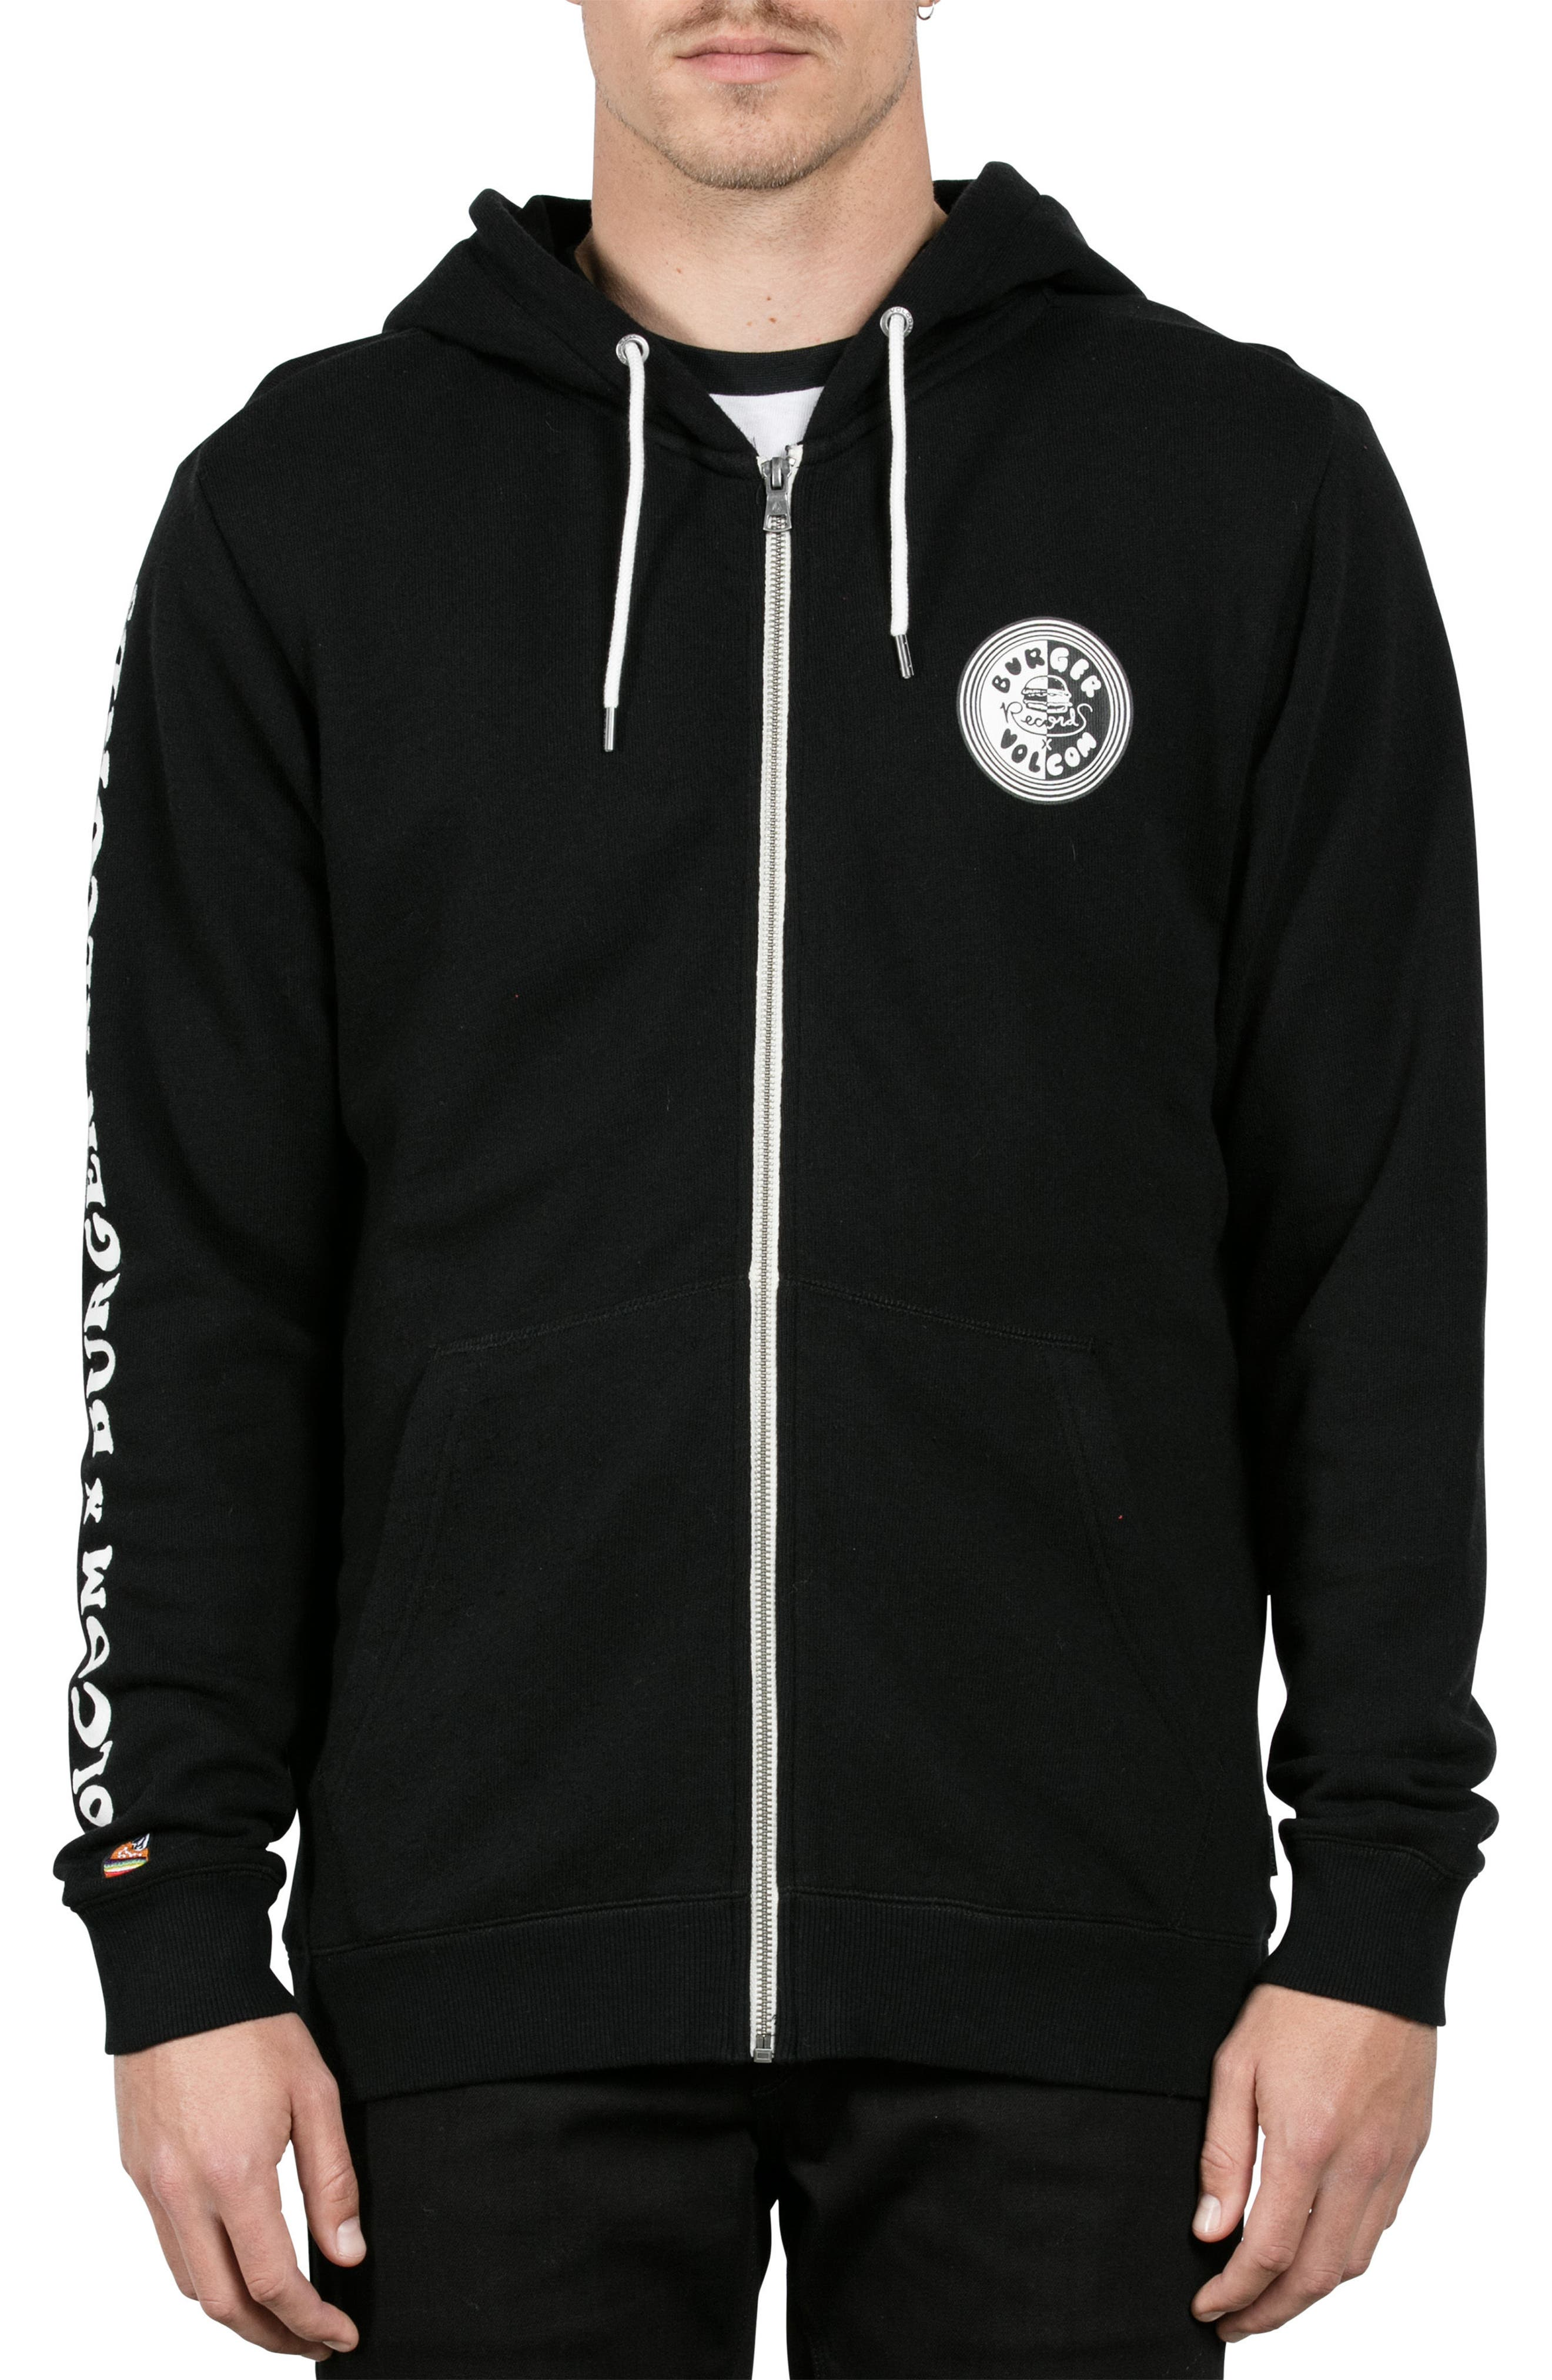 x Burger Records Hoodie,                         Main,                         color, 001